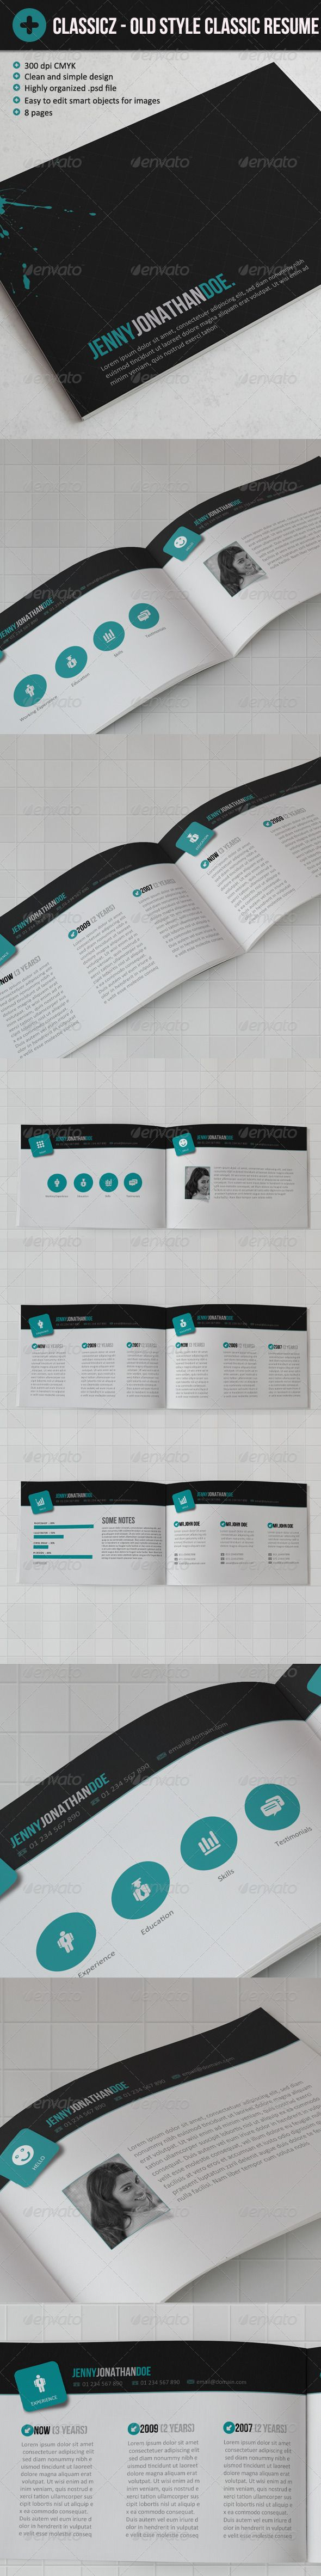 95 best images about print templates on pinterest